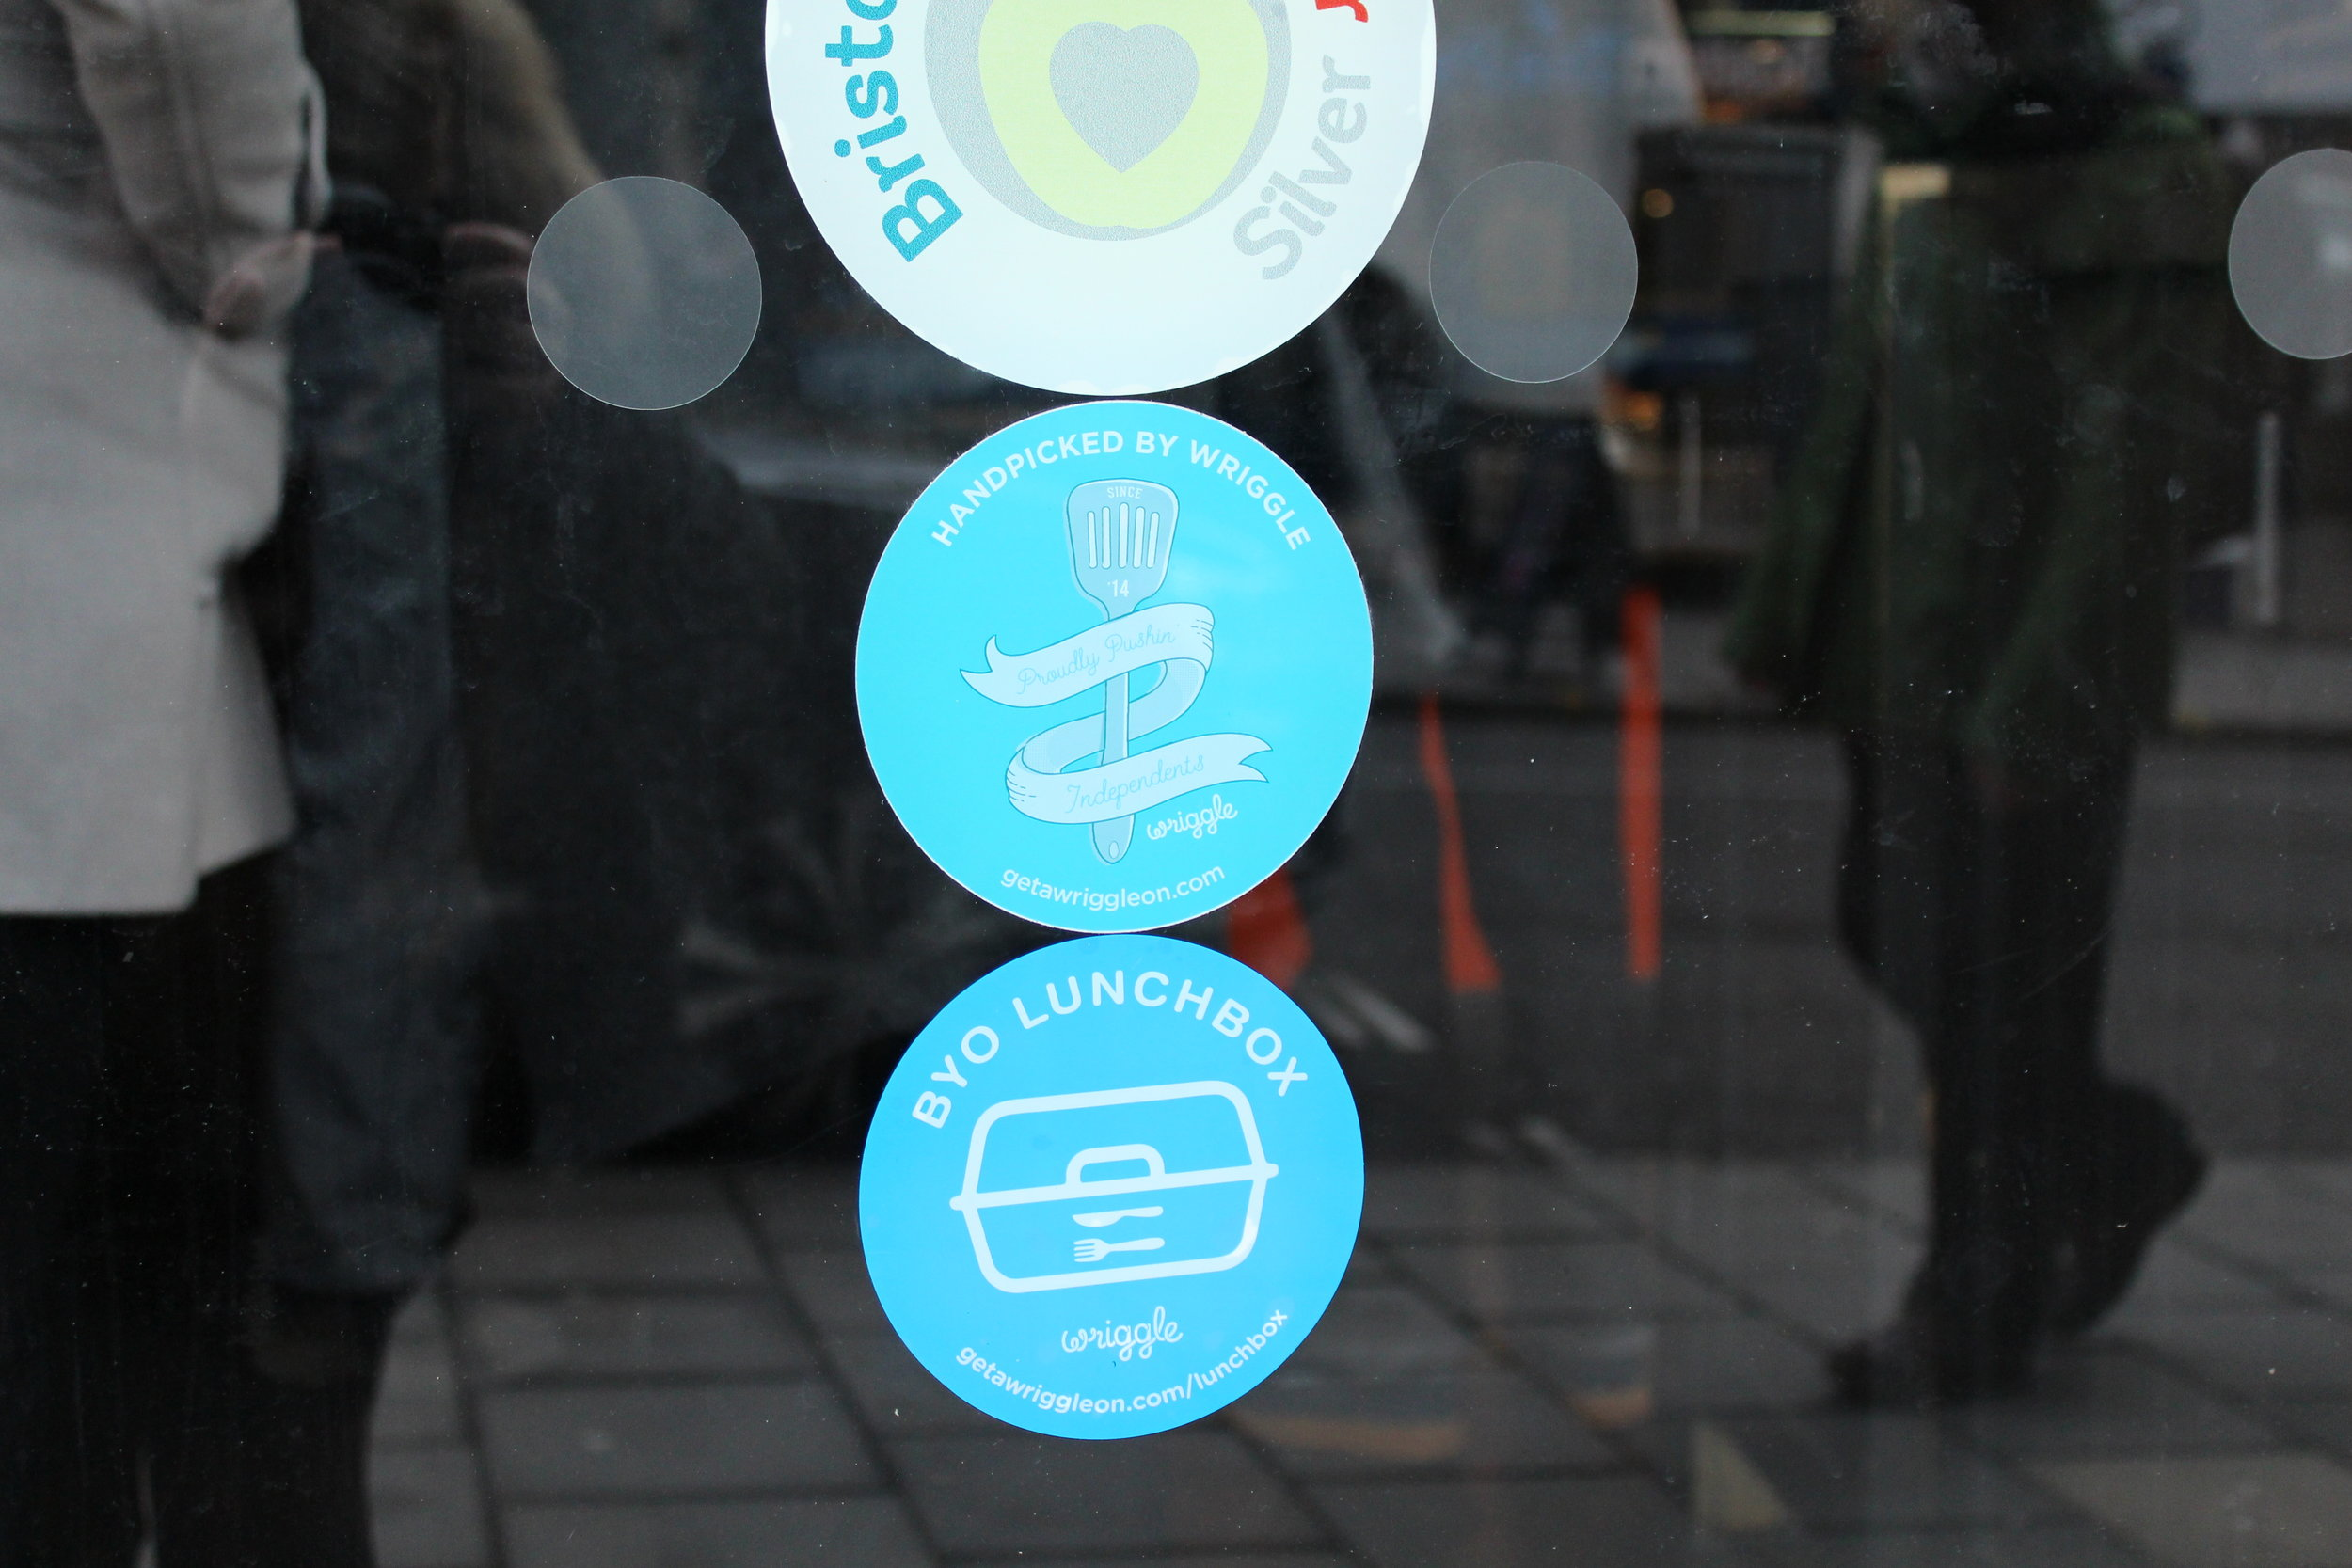 Add a sticker to your window - Display your window sticker with pride knowing that you're helping to reduce the impact of single-use plastics, and to let passers-by know that they are welcome to come and fill up their lunchbox with you.